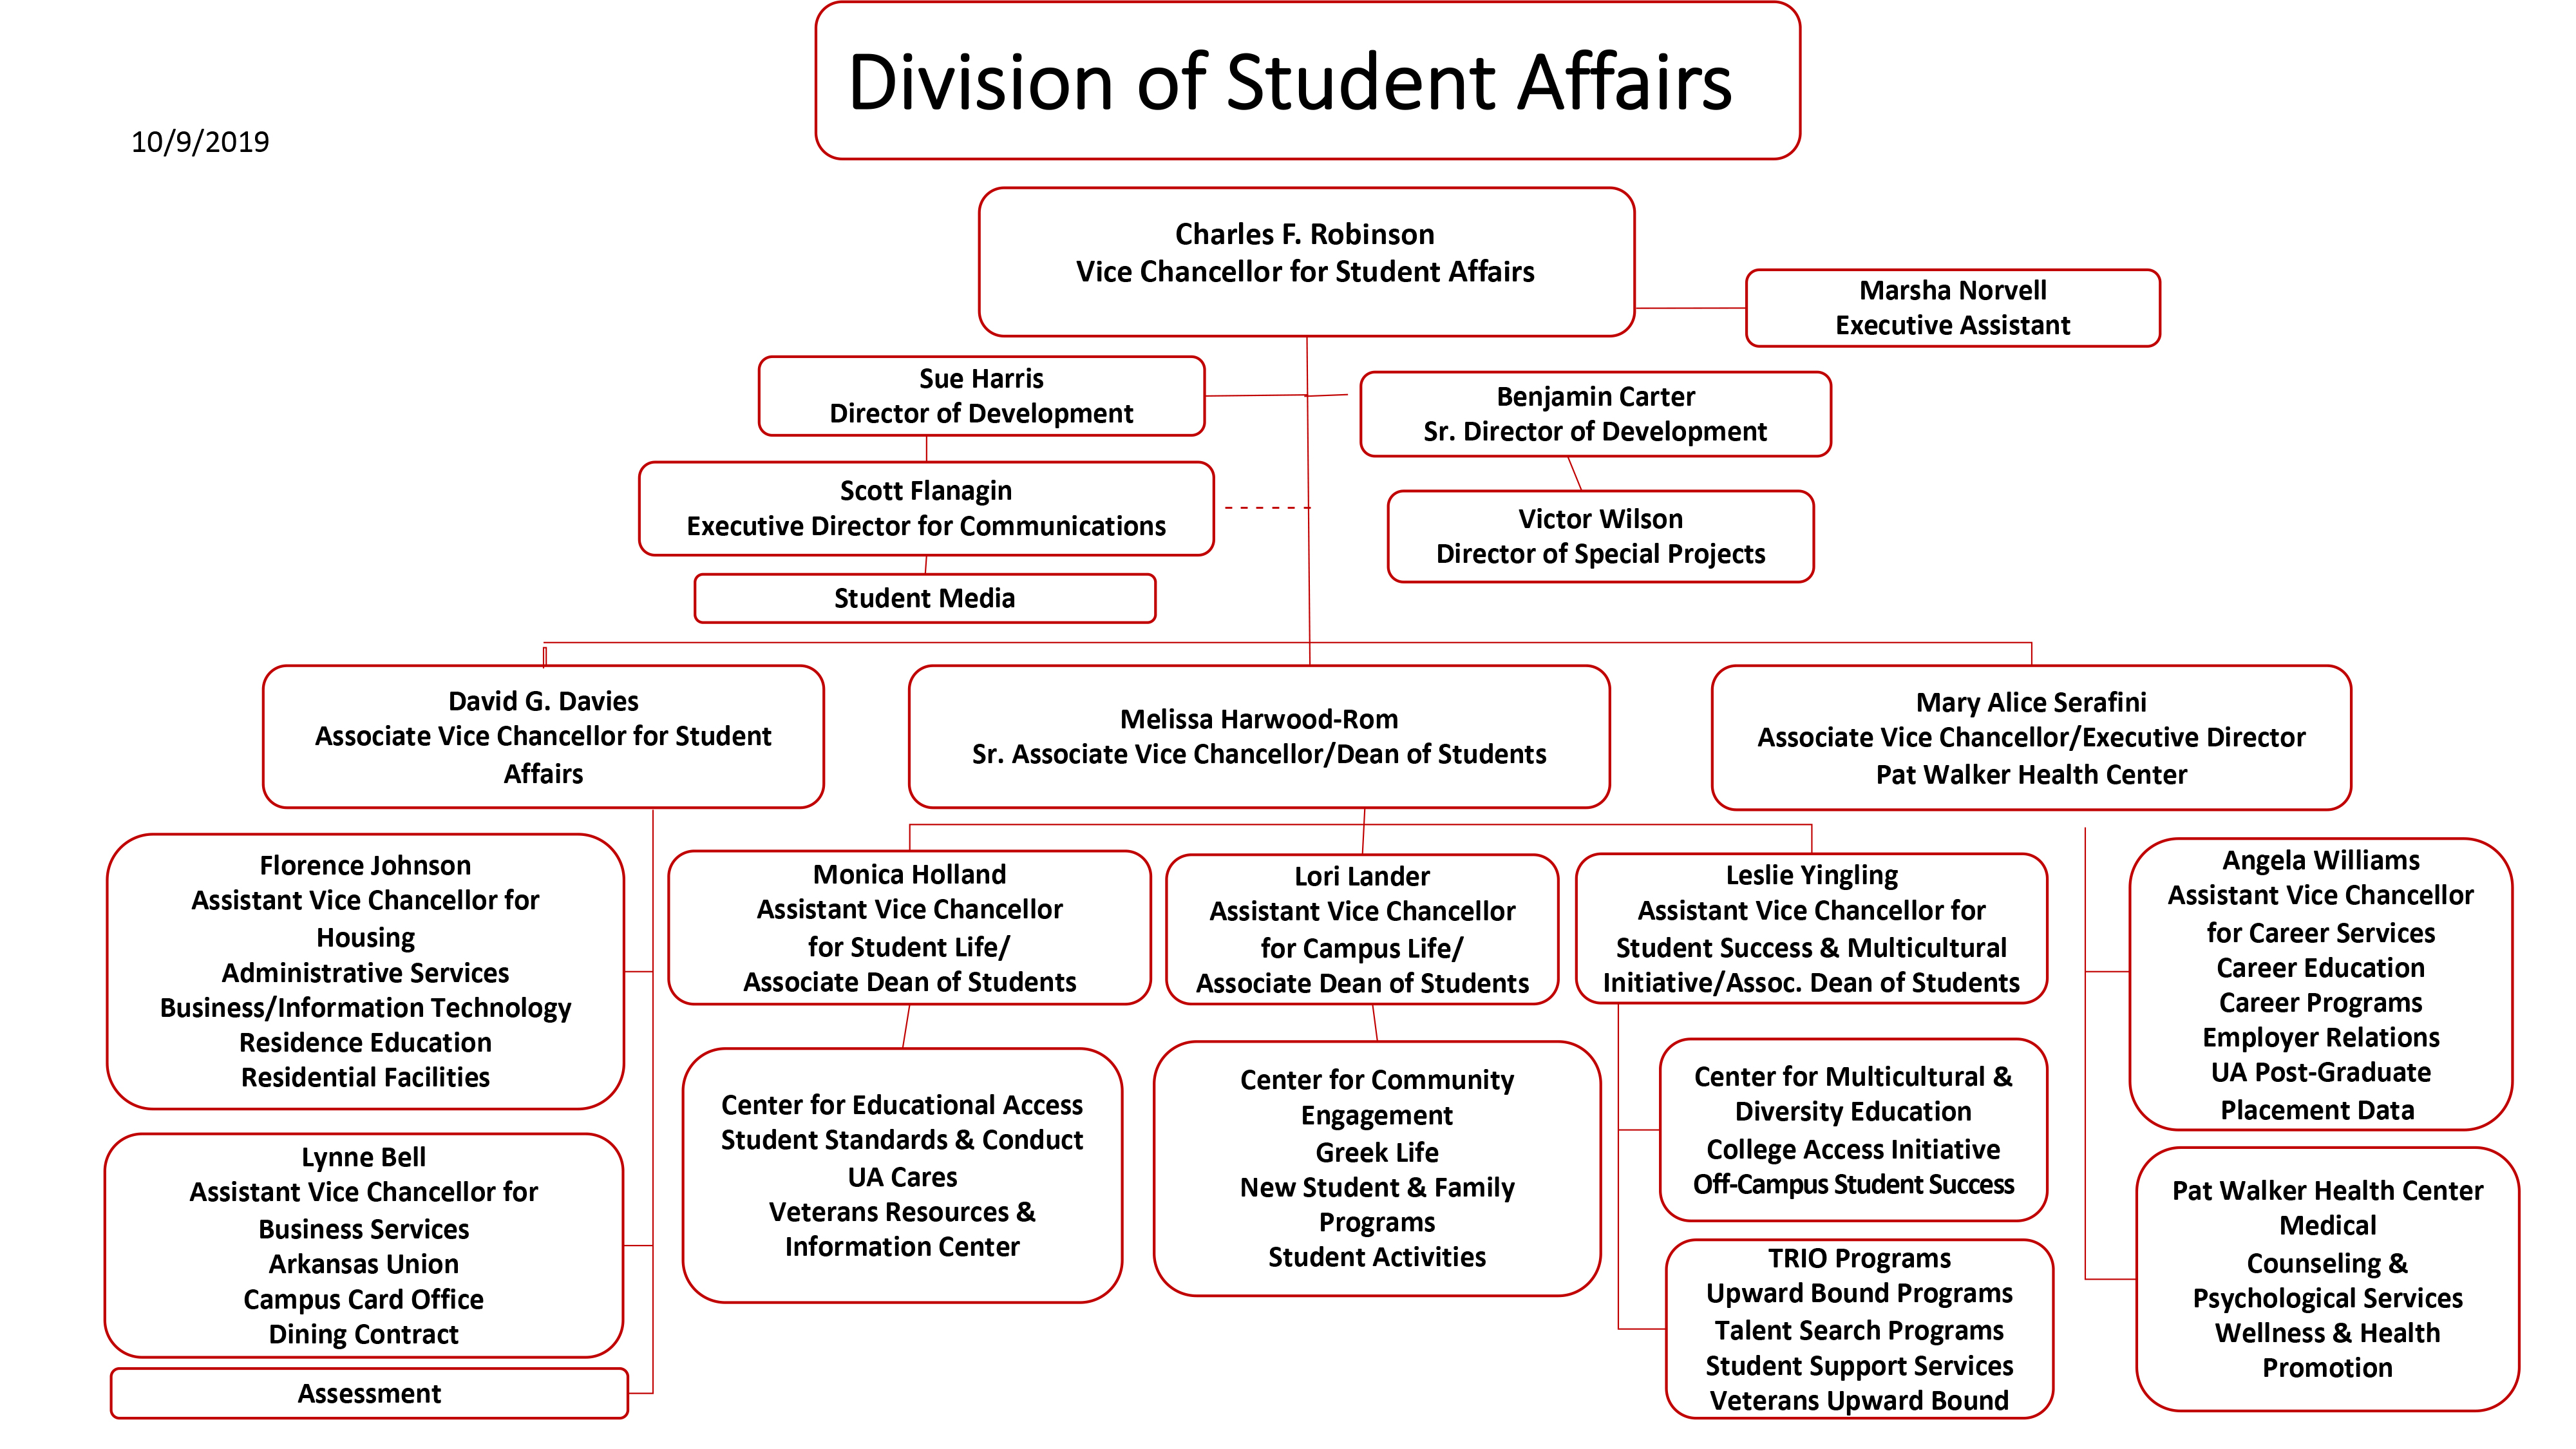 Division of Student Affairs organizational flow chart